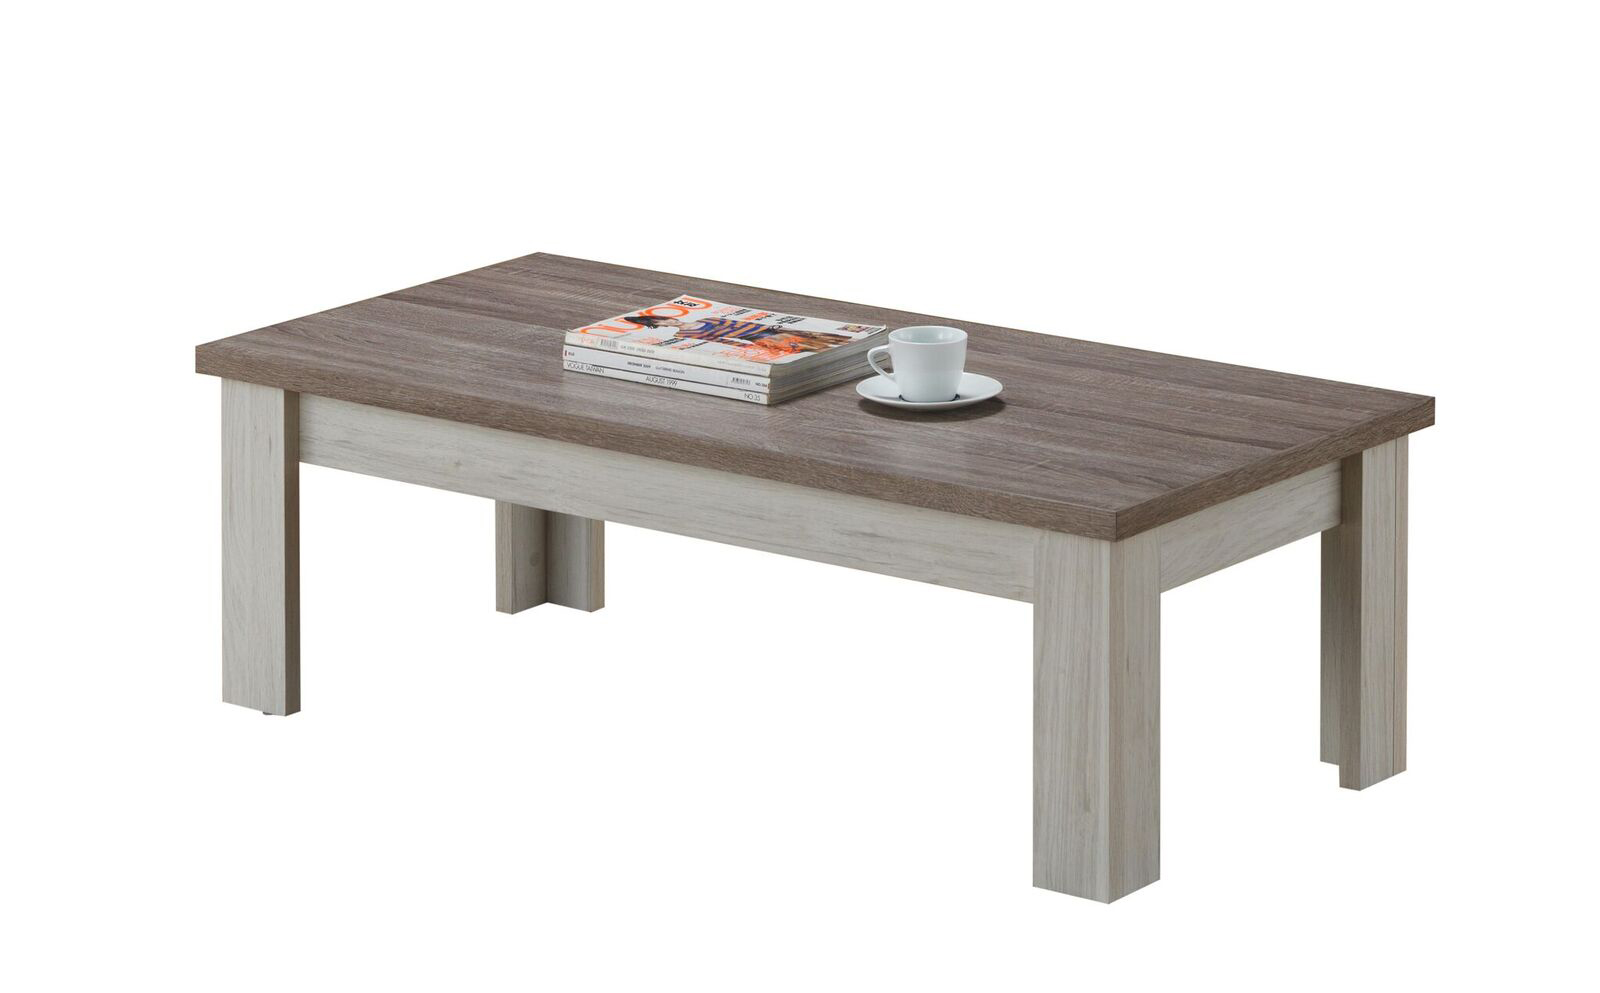 Table basse contemporaine rectangulaire chêne clair/brun Milena